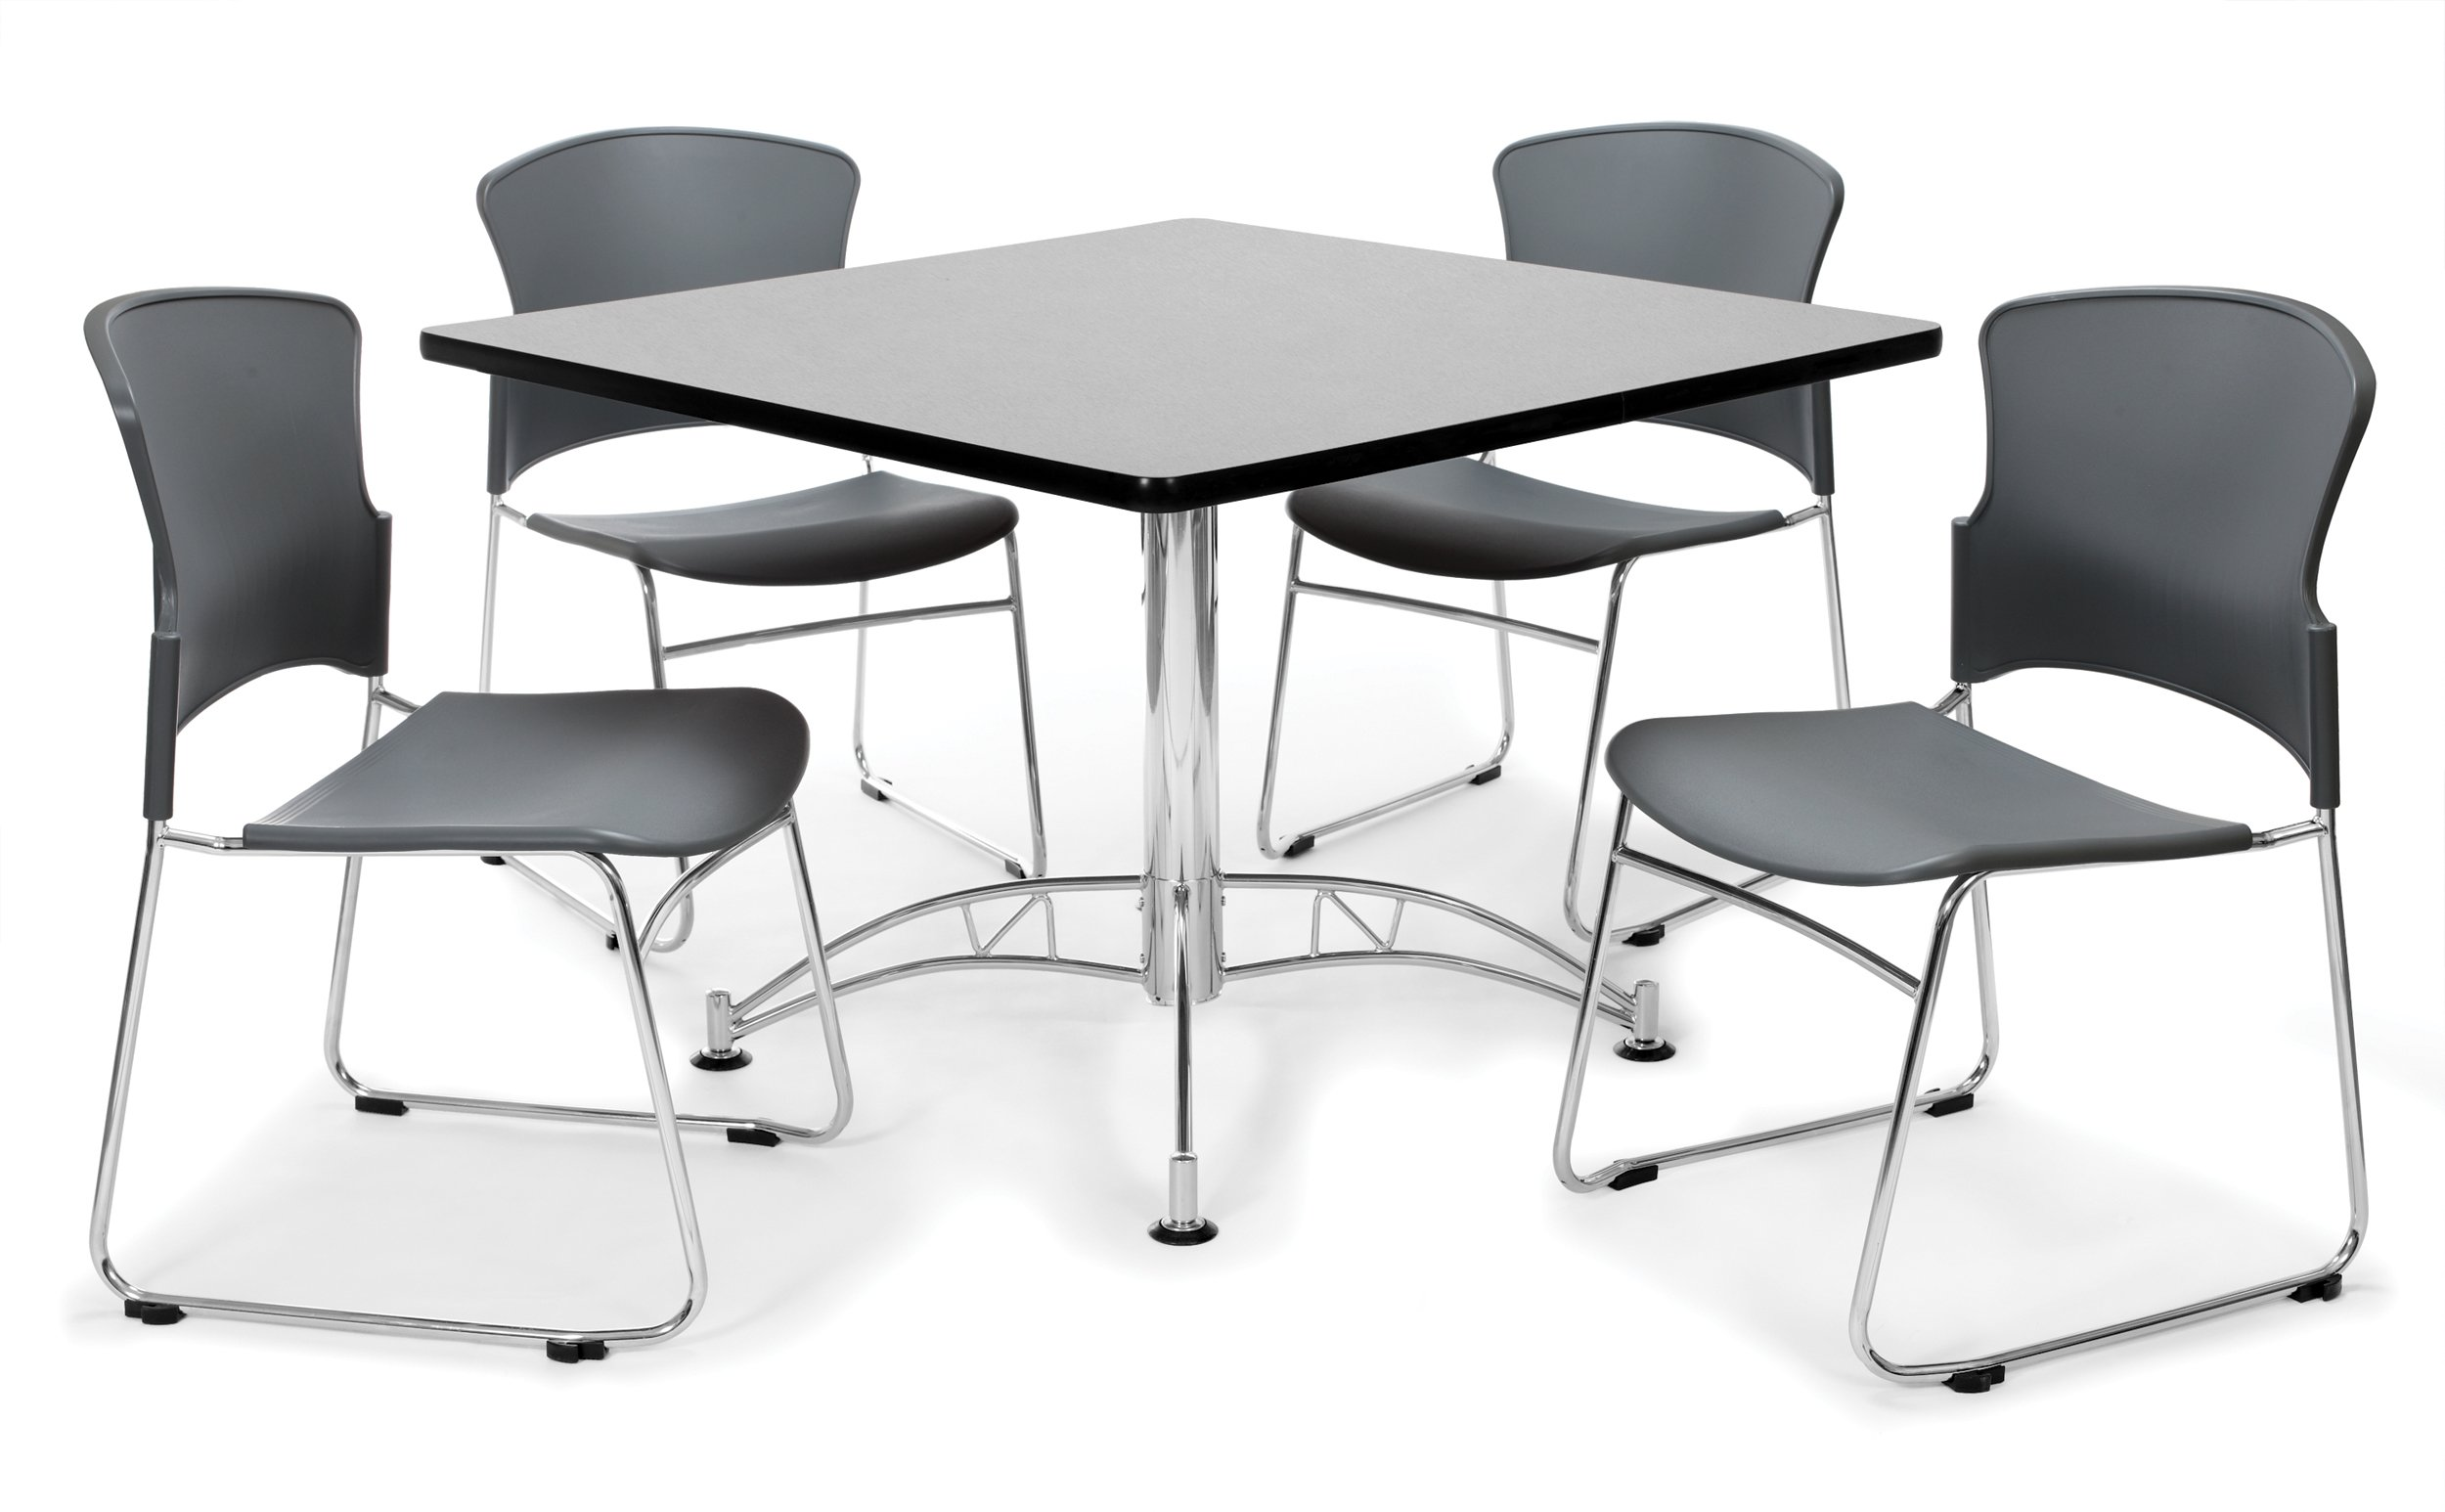 OFM PKG-BRK-09-0005 Breakroom Package, Gray Nebula Table/Gray Chair